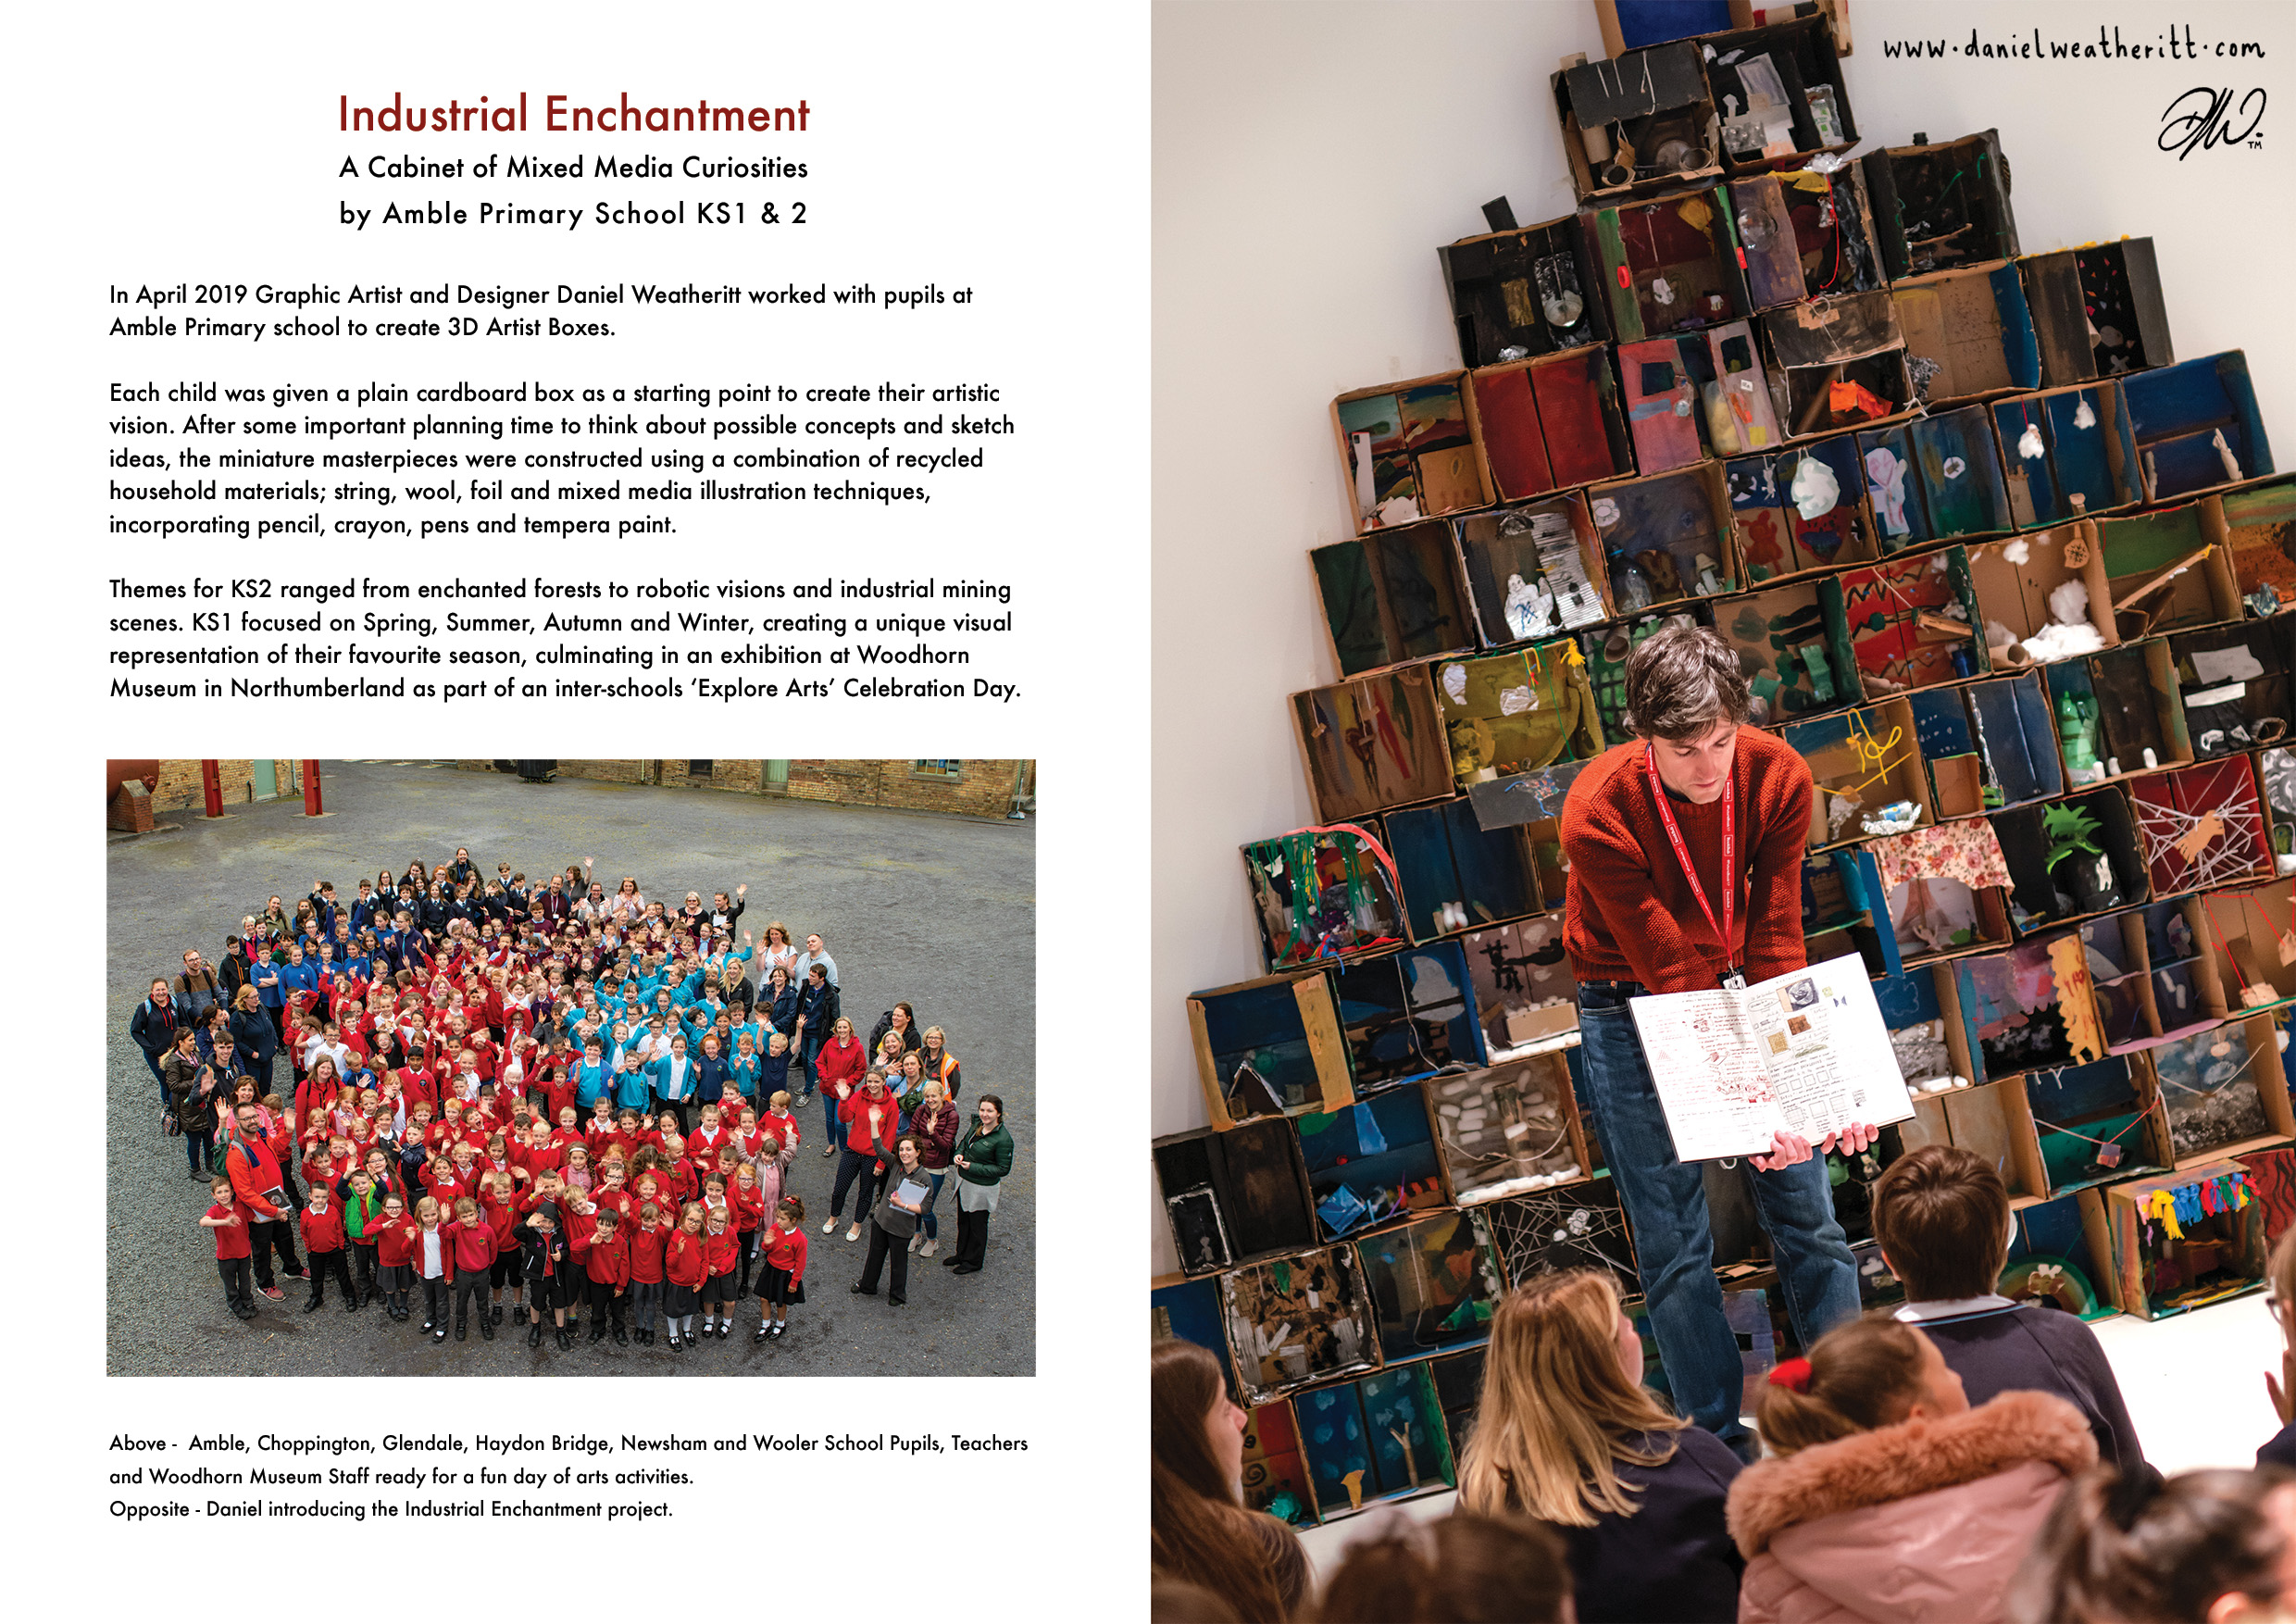 <b>Industrial Enchantment</b> - Pupil visual response exercises to Exhibition - 2 of 7